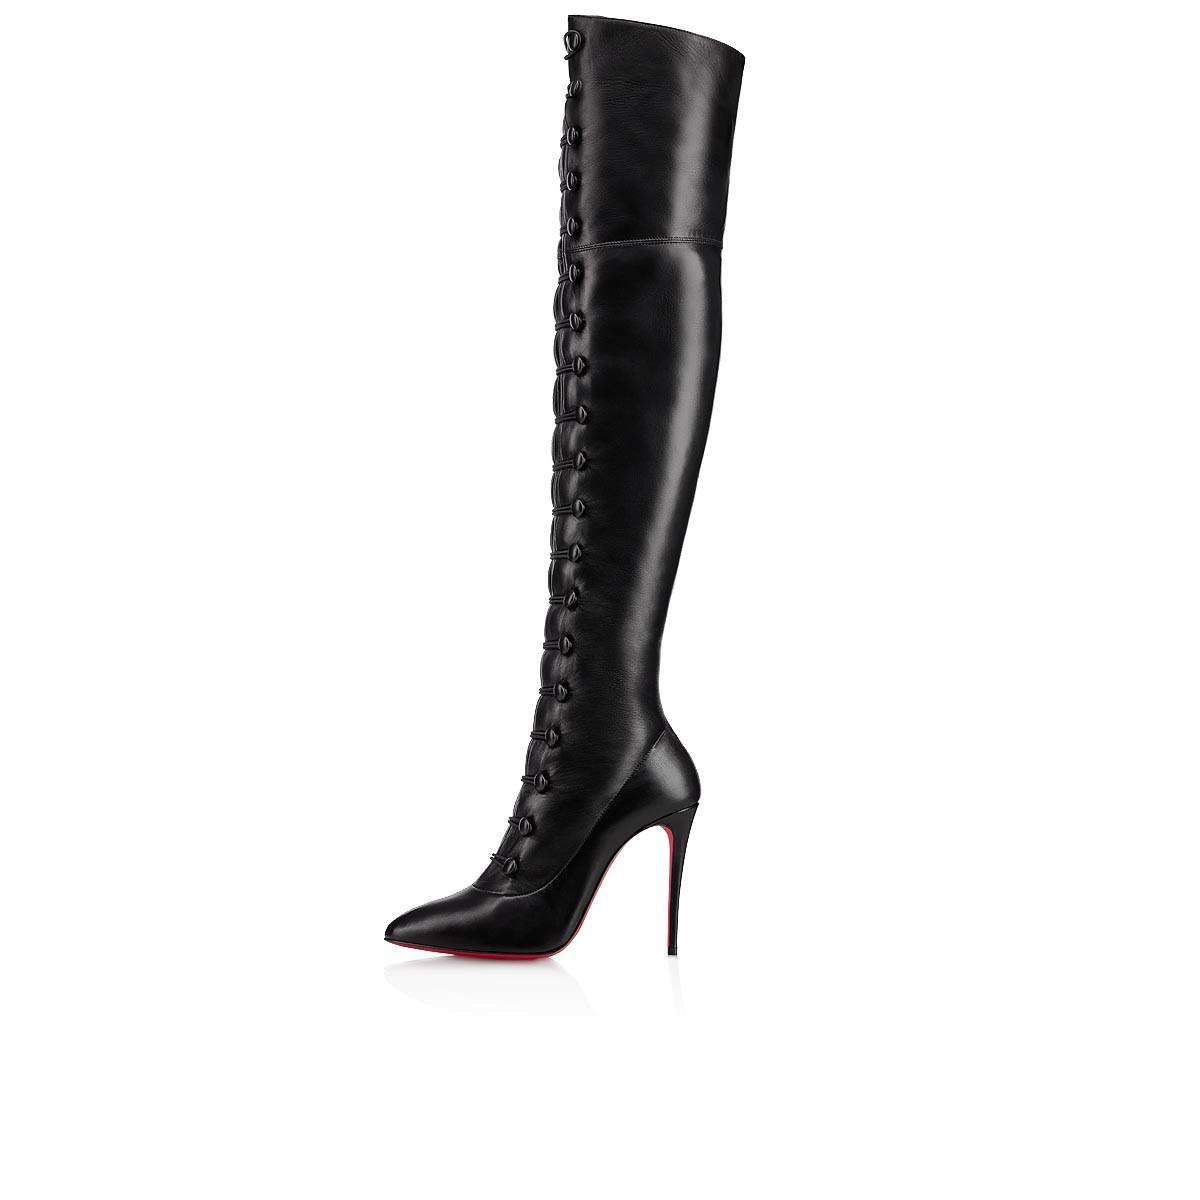 d616e6216f1 Christian Louboutin French Tutu Over The Knee Boot In Black